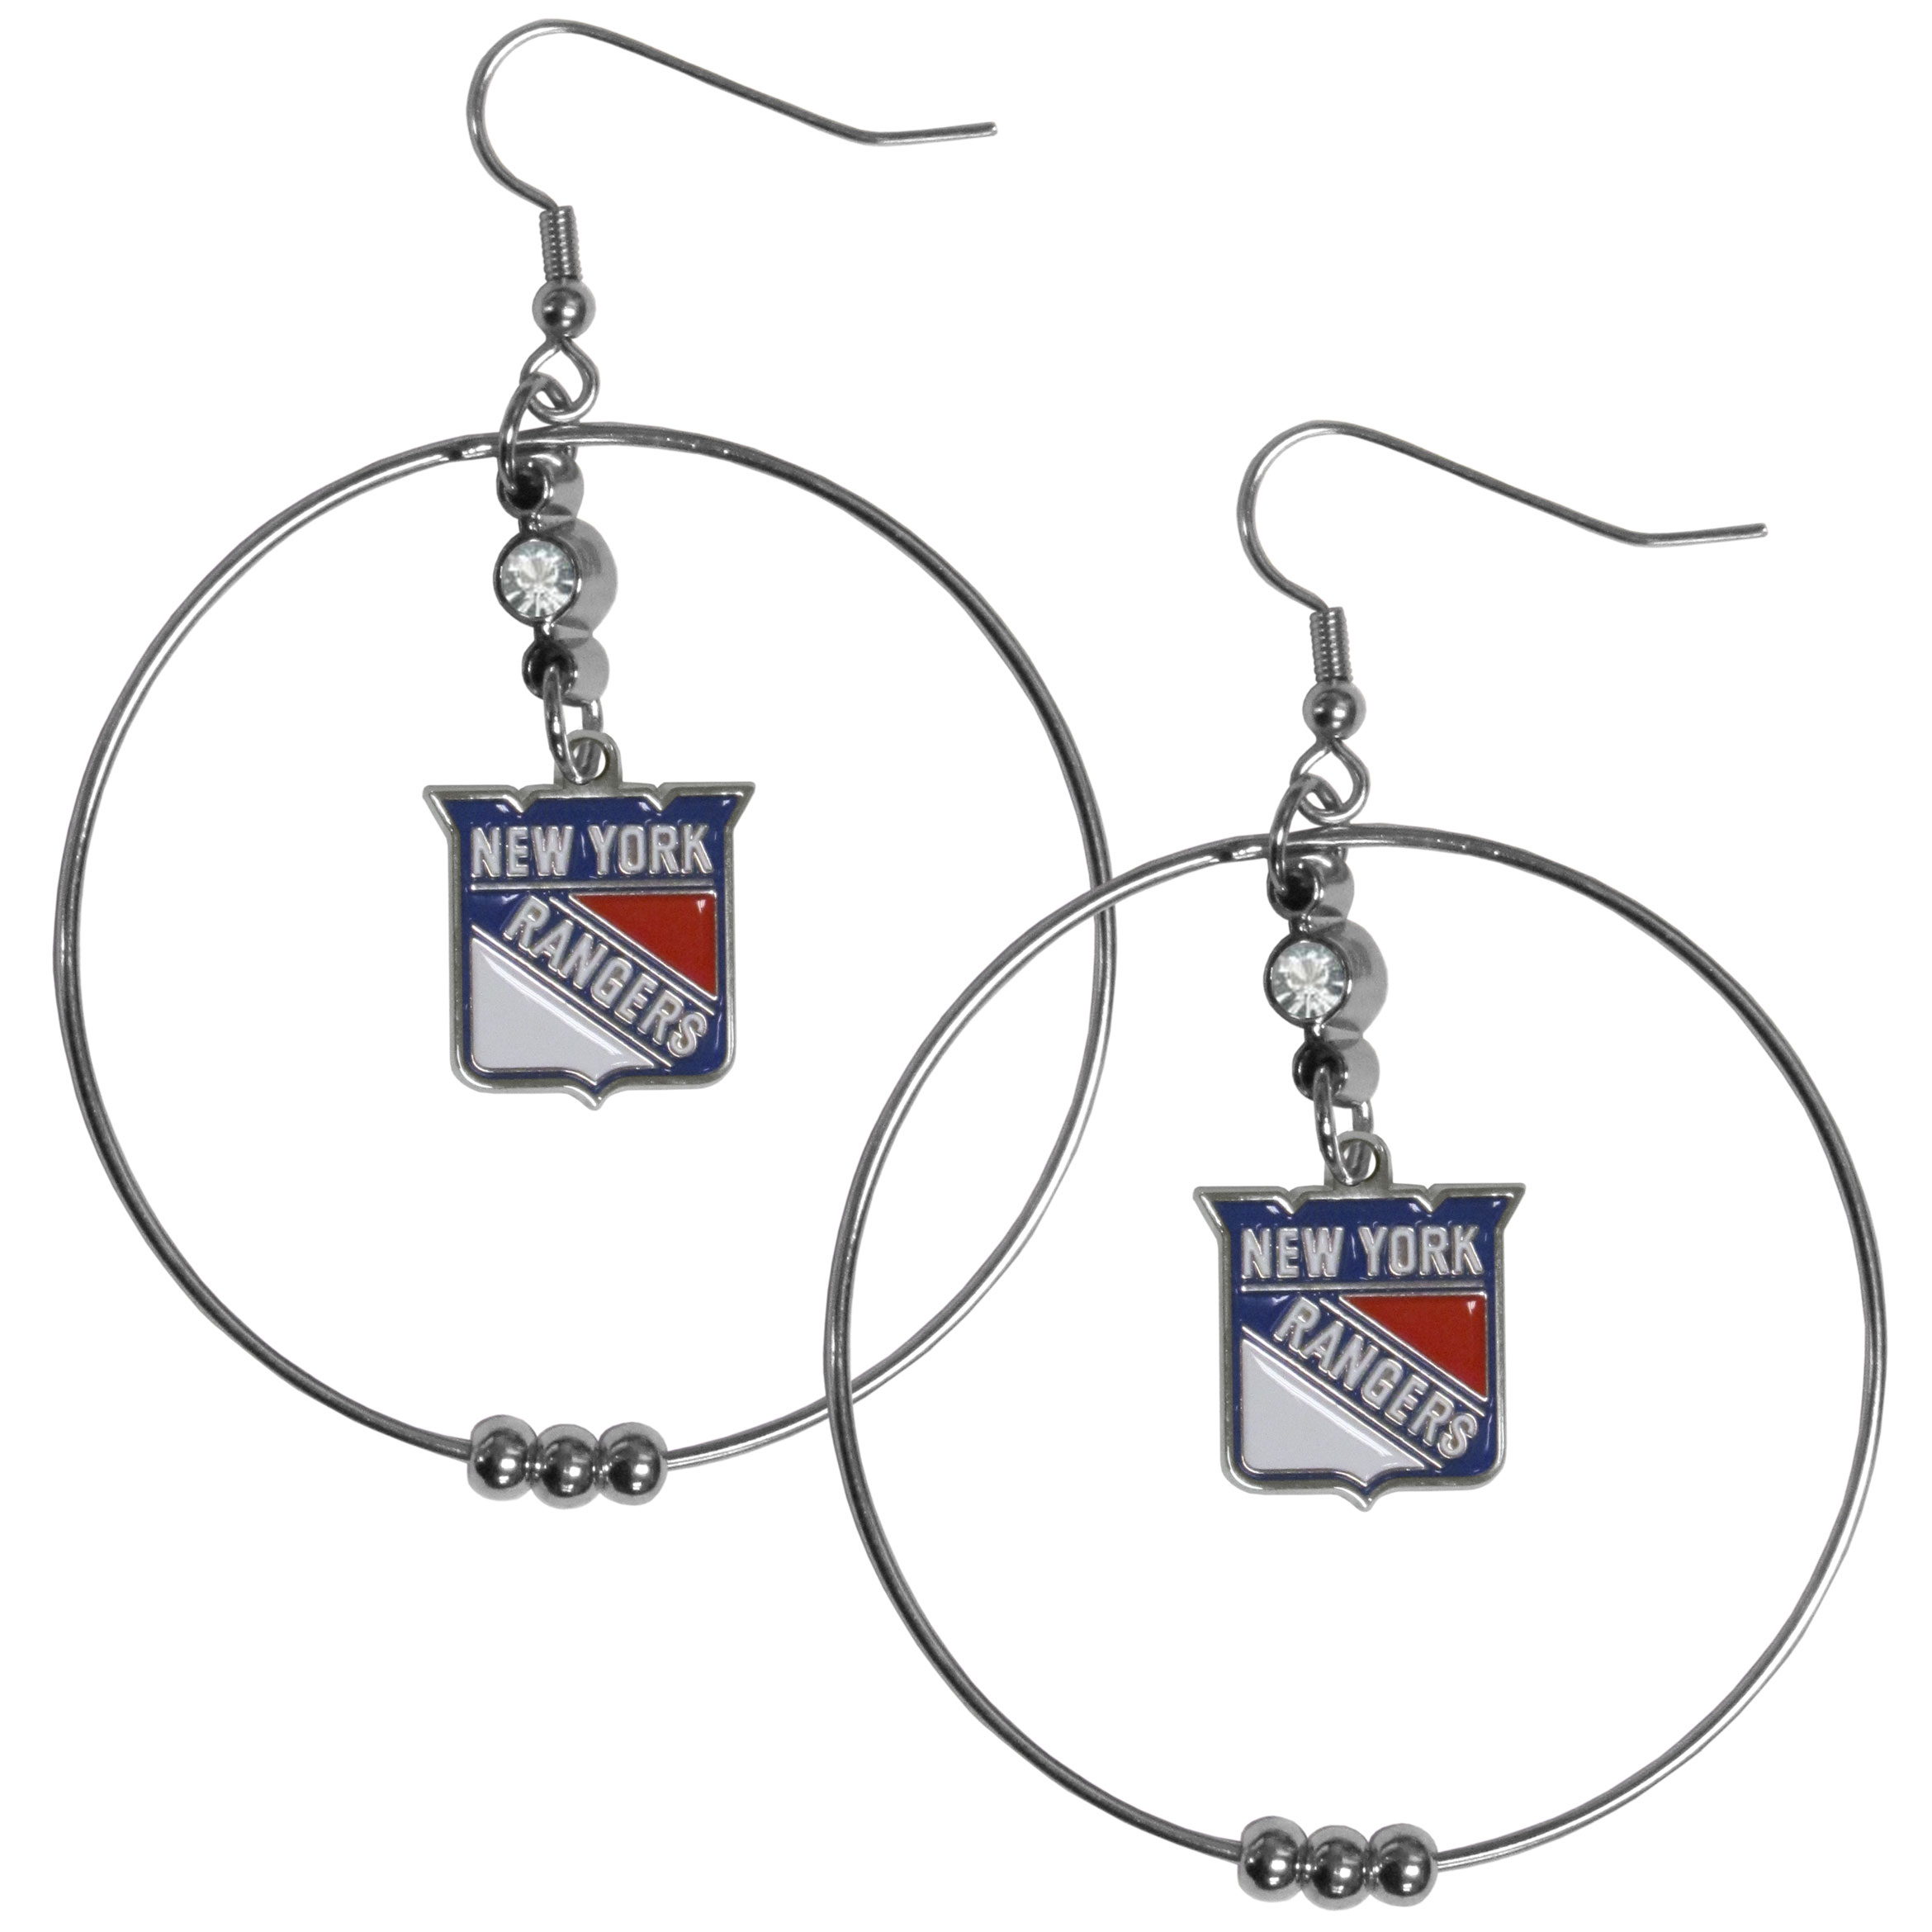 New York Rangers® 2 Inch Hoop Earrings - Our large hoop earrings have a fully cast and enameled New York Rangers® charm with enameled detail and a high polish nickel free chrome finish and rhinestone access. Hypoallergenic fishhook posts.